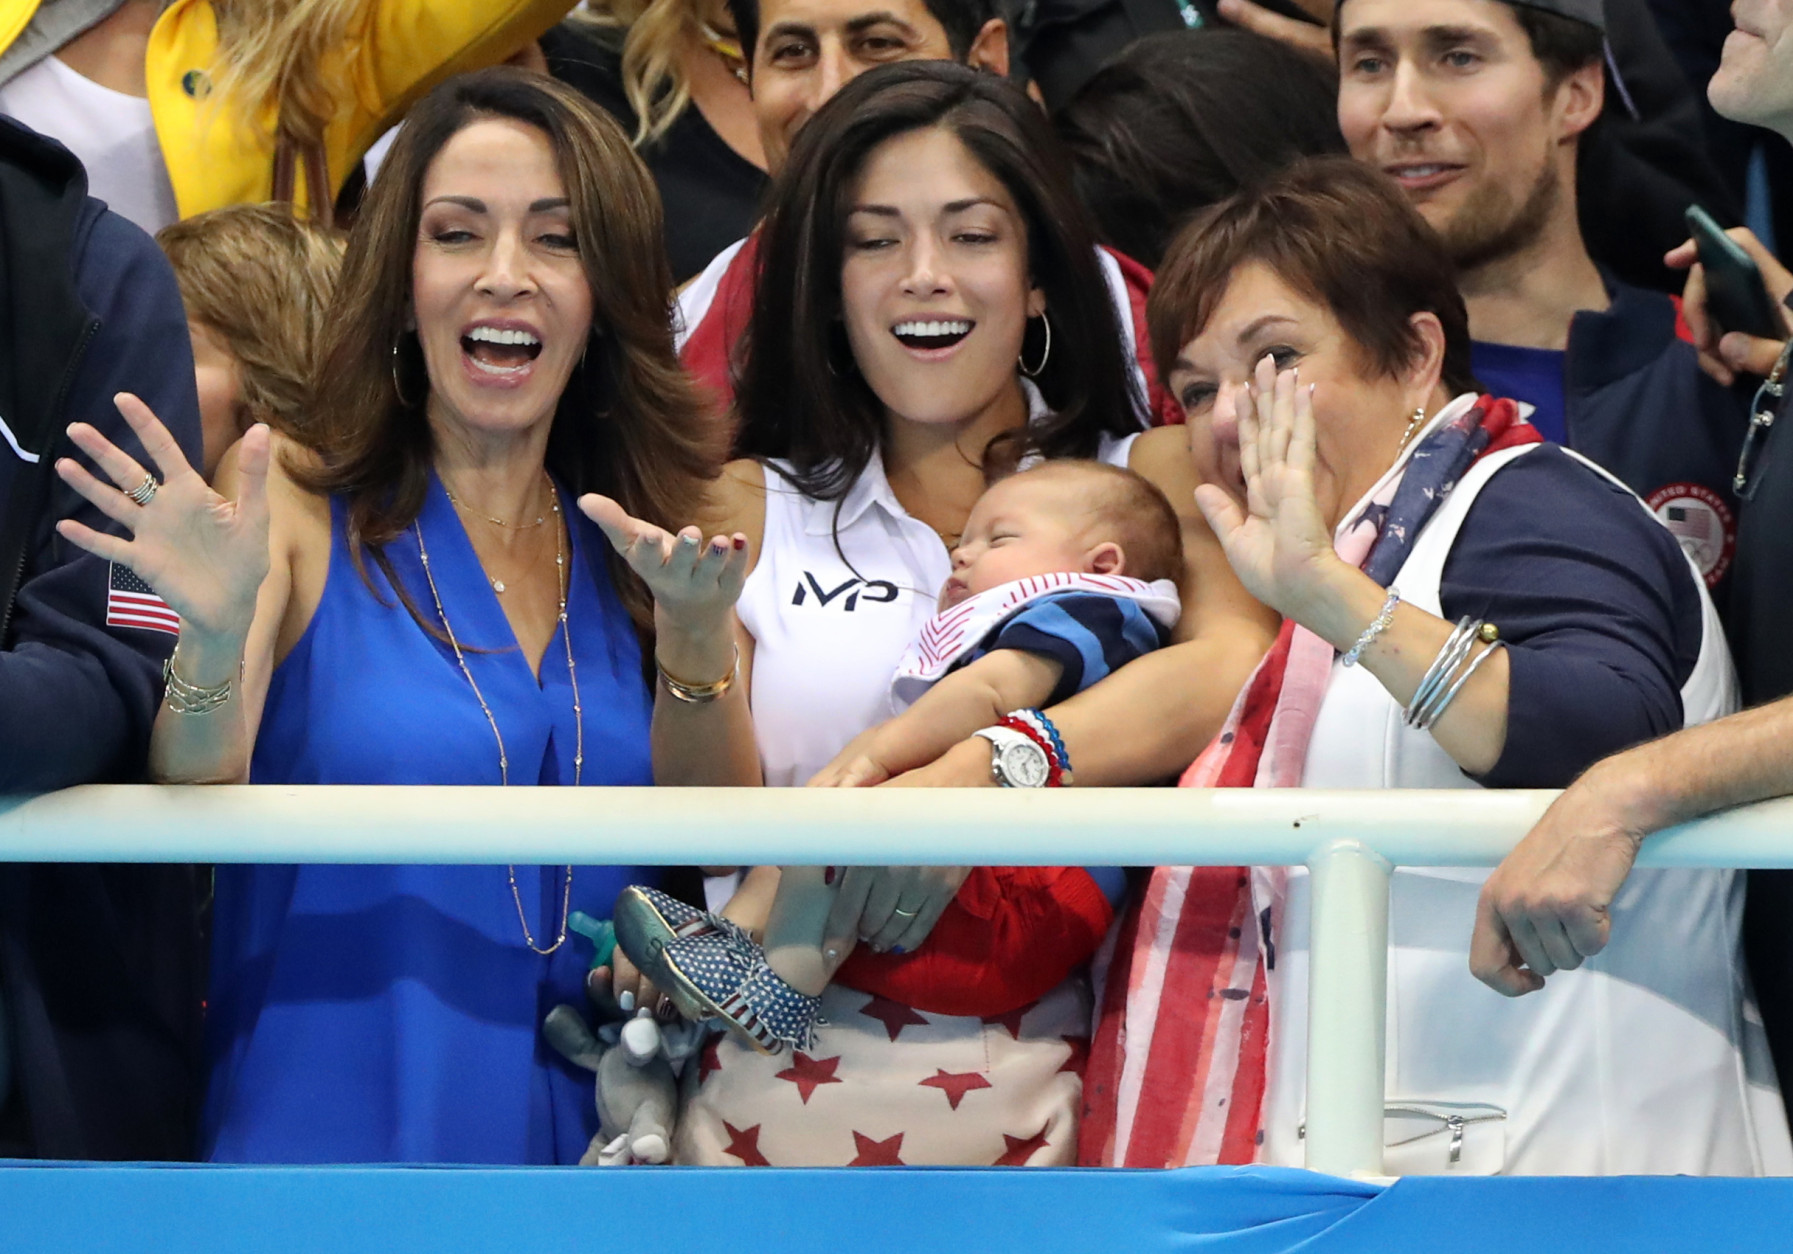 Nicole Johnson, fiance of United States' Michael Phelps, holds their baby Boomer, as she cheers along with Phelps' mother Debbie and sister during the men's 4 x 100-meter medley relay final during the swimming competitions at the 2016 Summer Olympics, Saturday, Aug. 13, 2016, in Rio de Janeiro, Brazil. (AP Photo/Lee Jin-man)